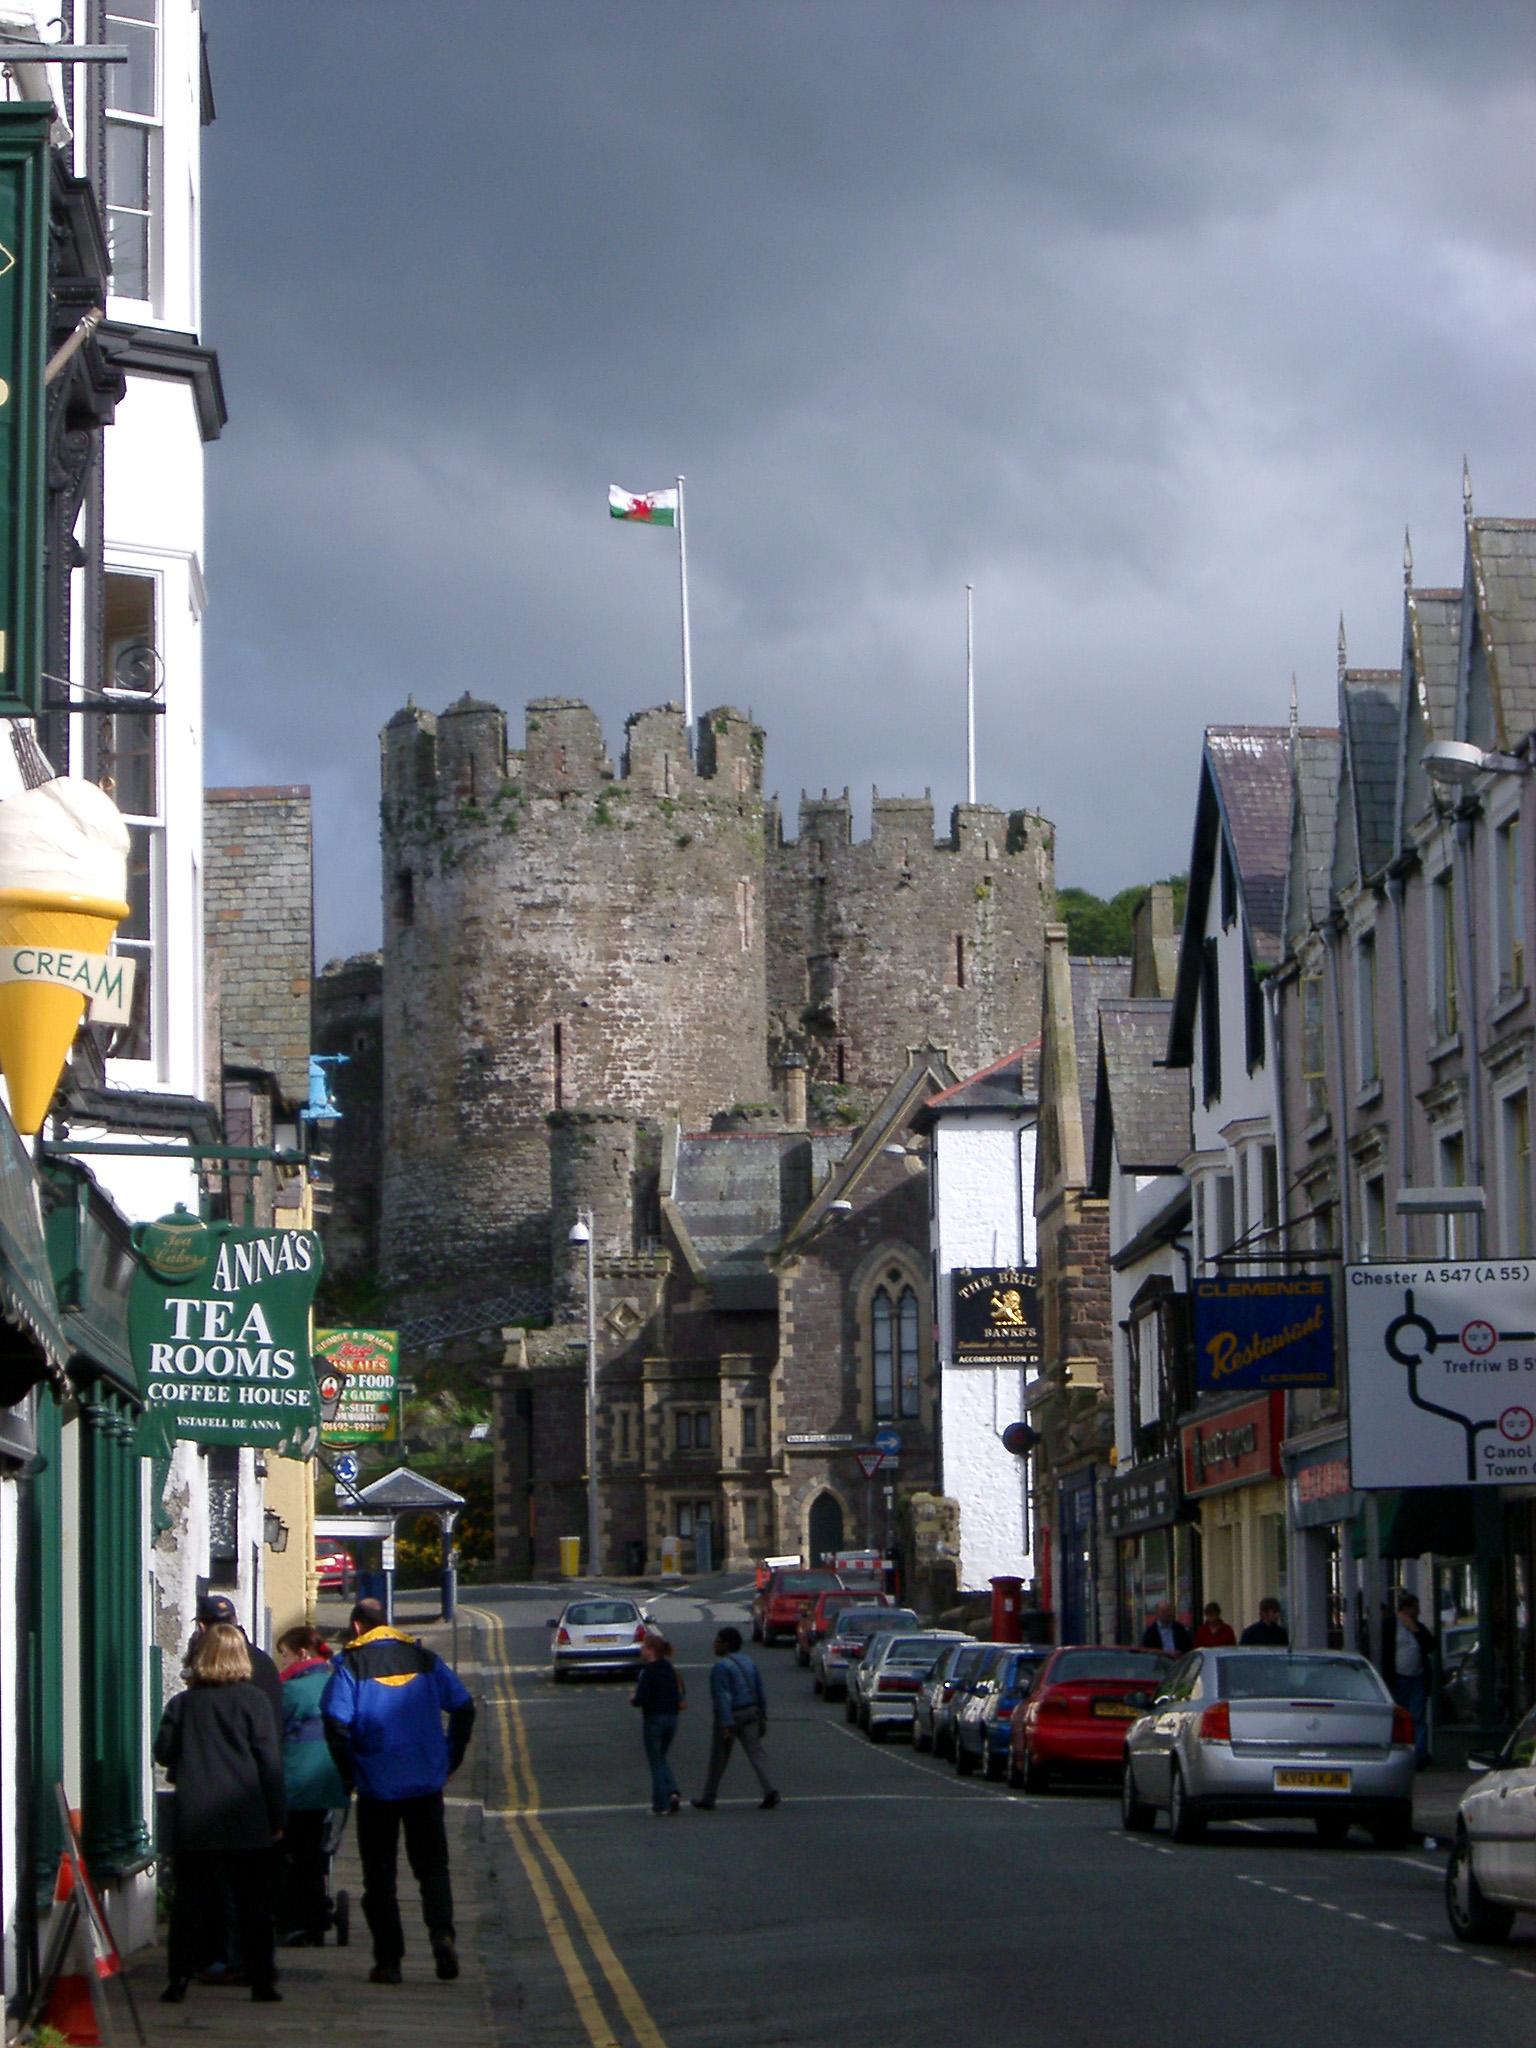 Busy Street Scene with Vehicles and People at Conwy, Wales. Captured with the Castle on a Stormy Sky Above.